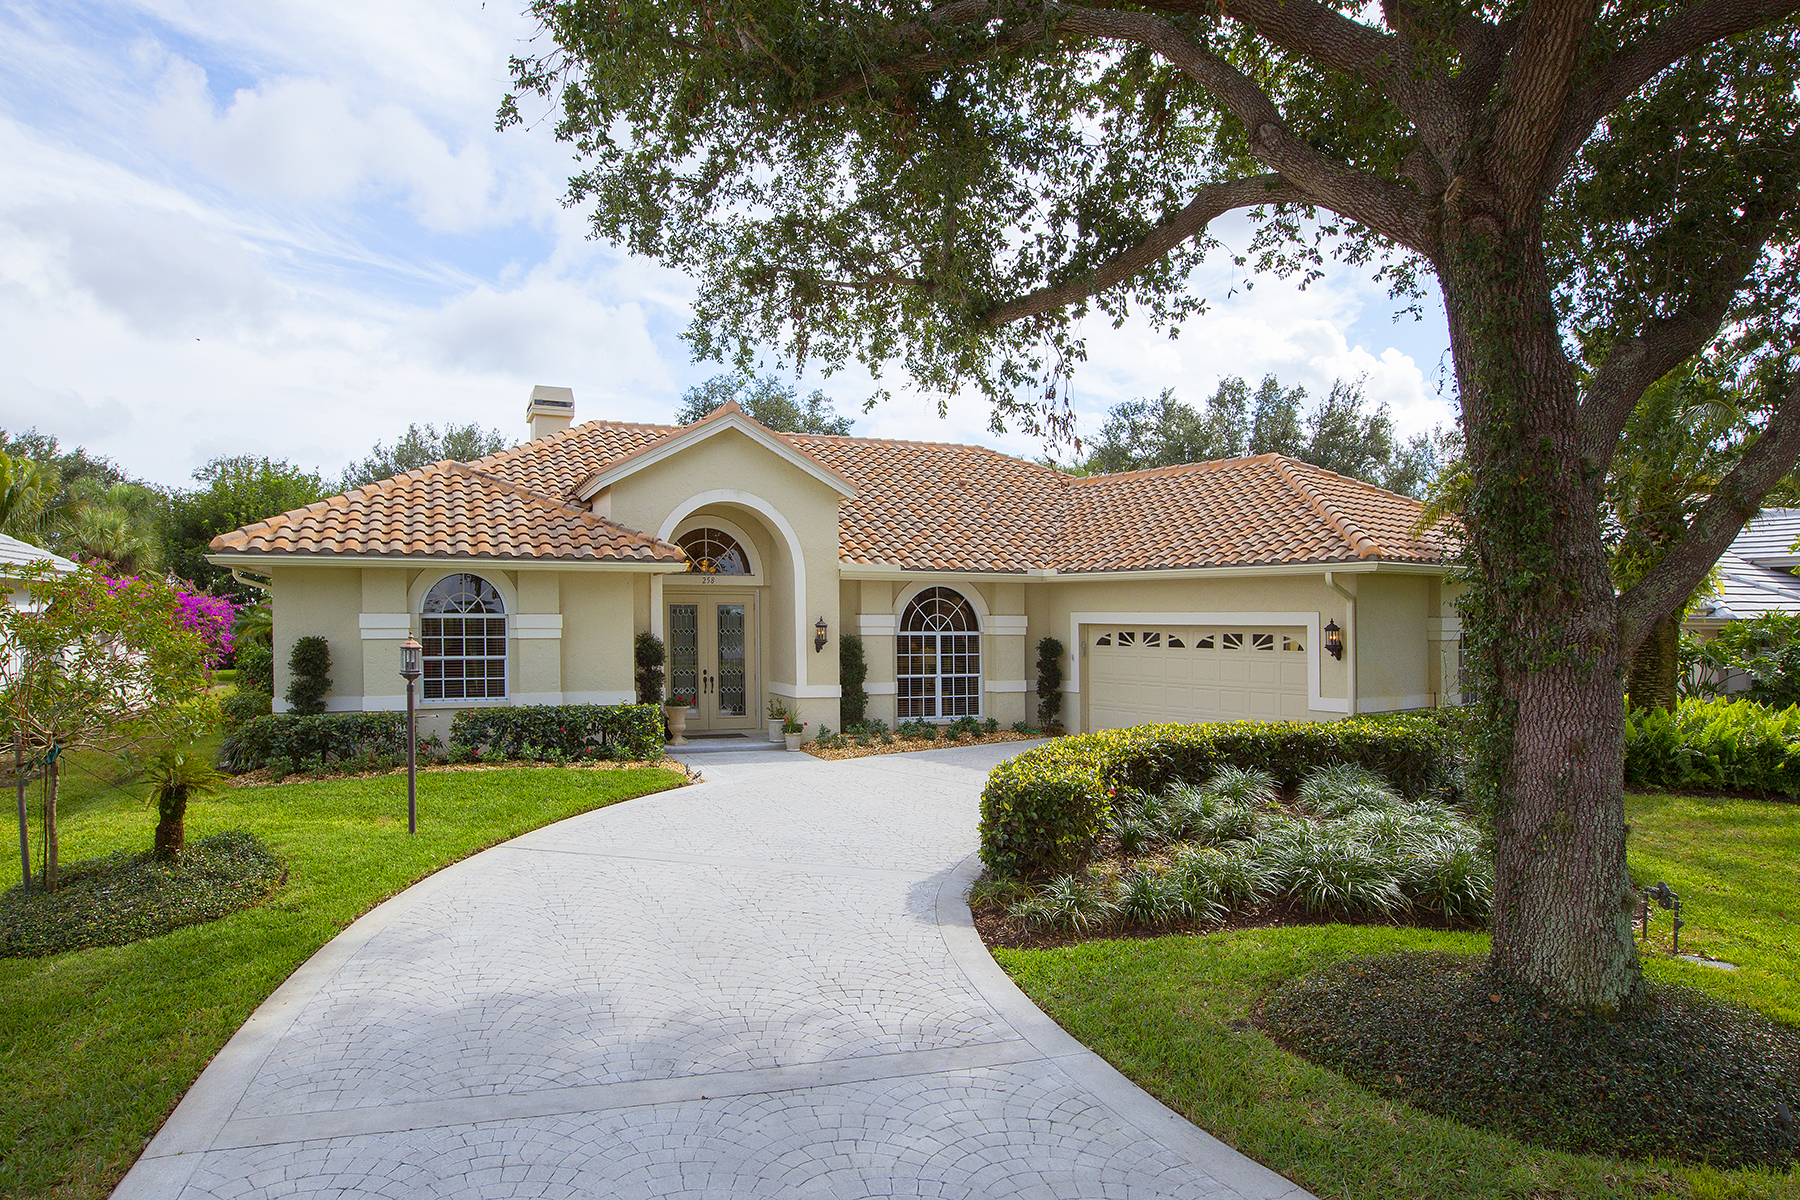 واحد منزل الأسرة للـ Sale في Naples 258 Monterey Dr, Vineyards, Naples, Florida, 34119 United States